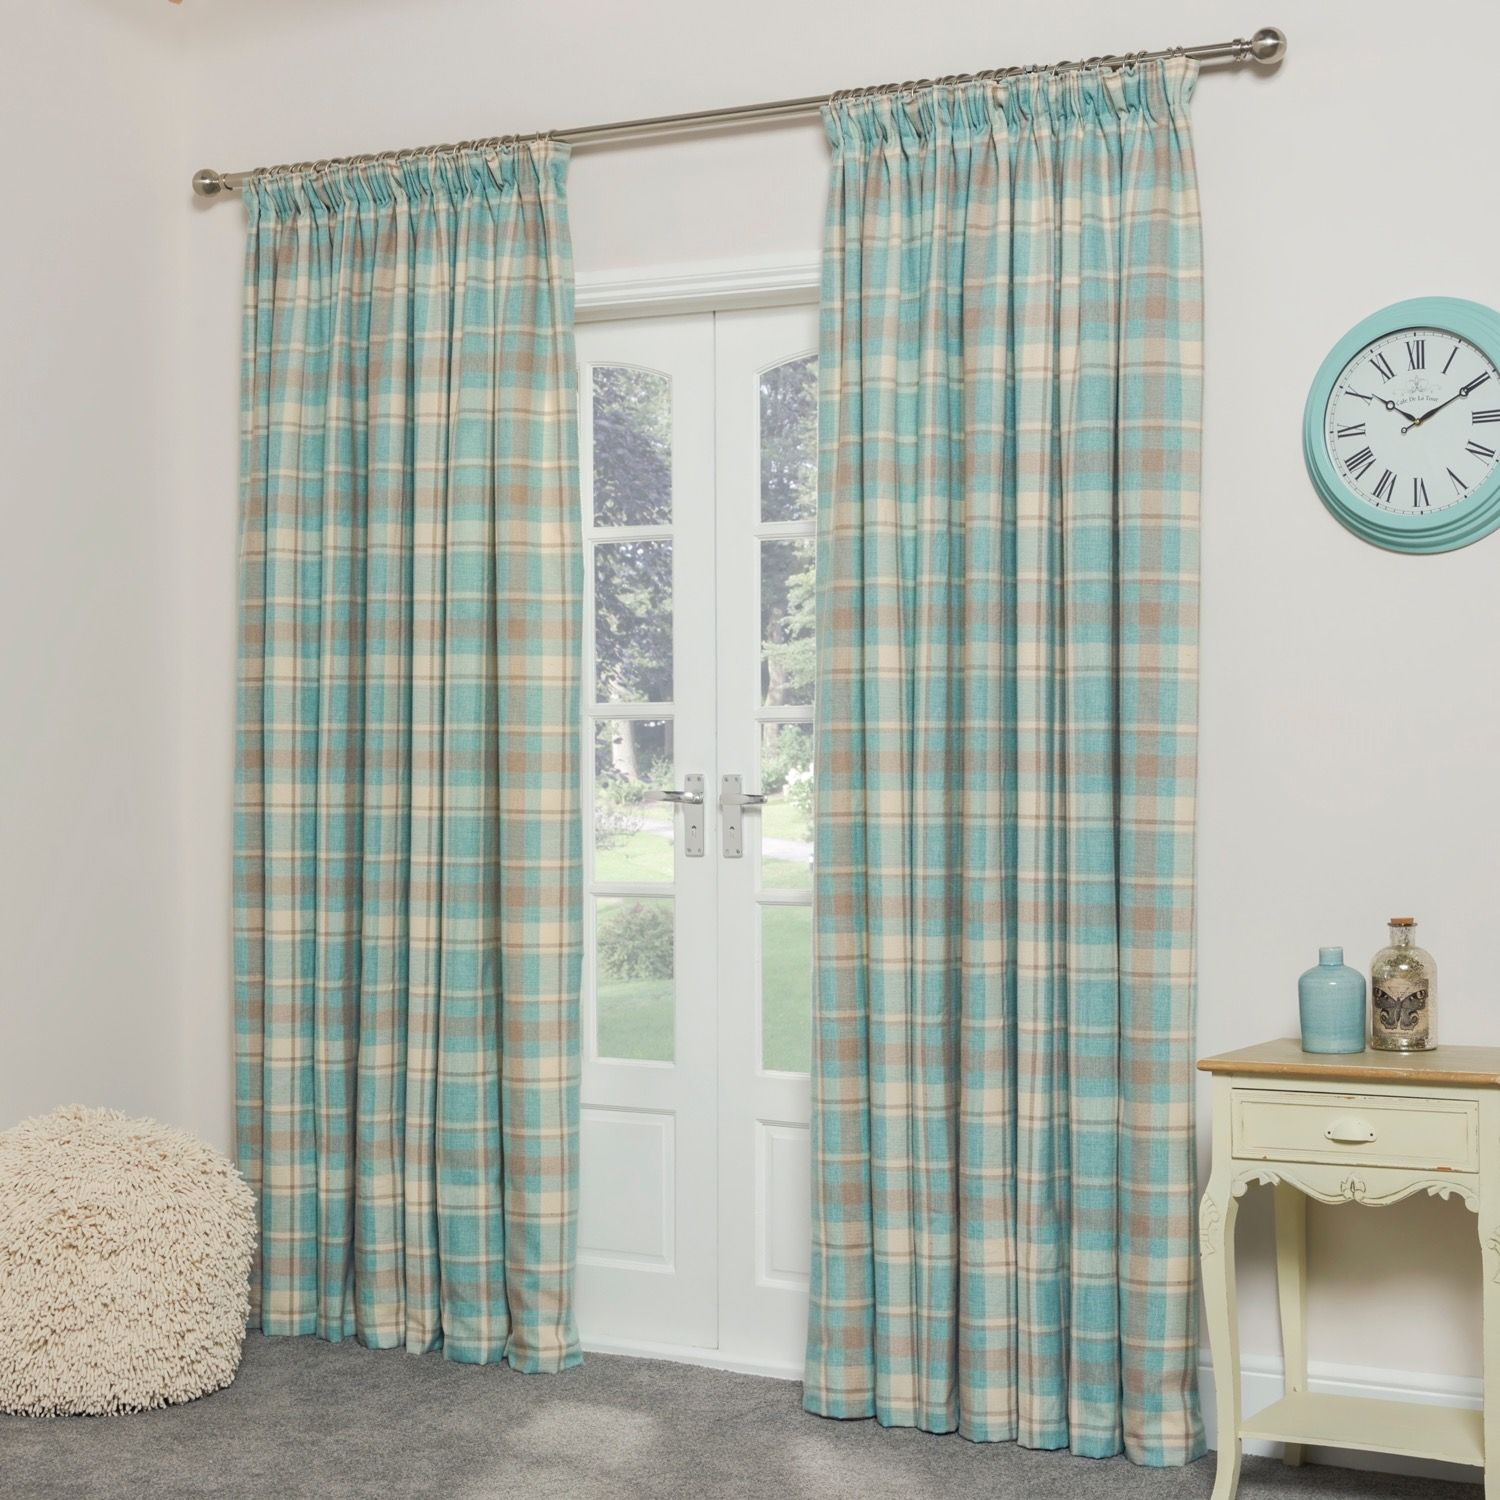 Pin By Em Jackson On Summer Lounge Check Curtains Curtains Curtain Patterns